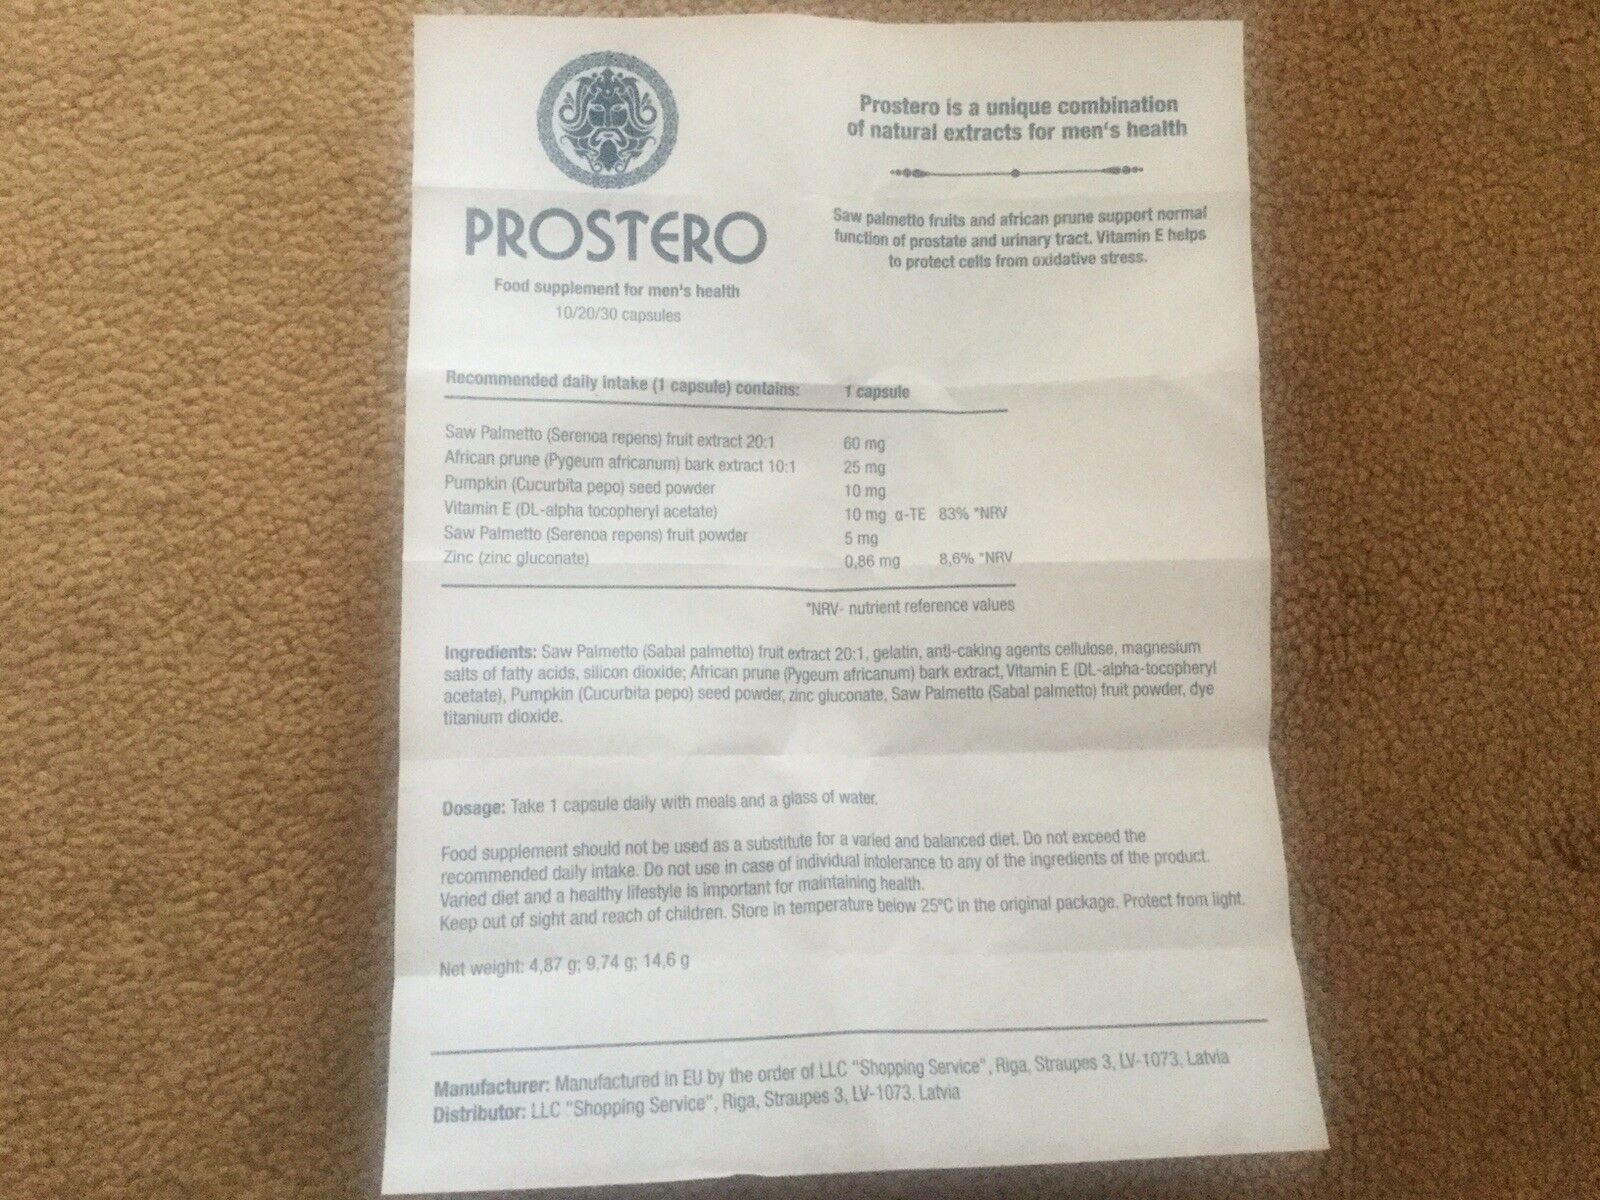 Instructions to the drug Prostero